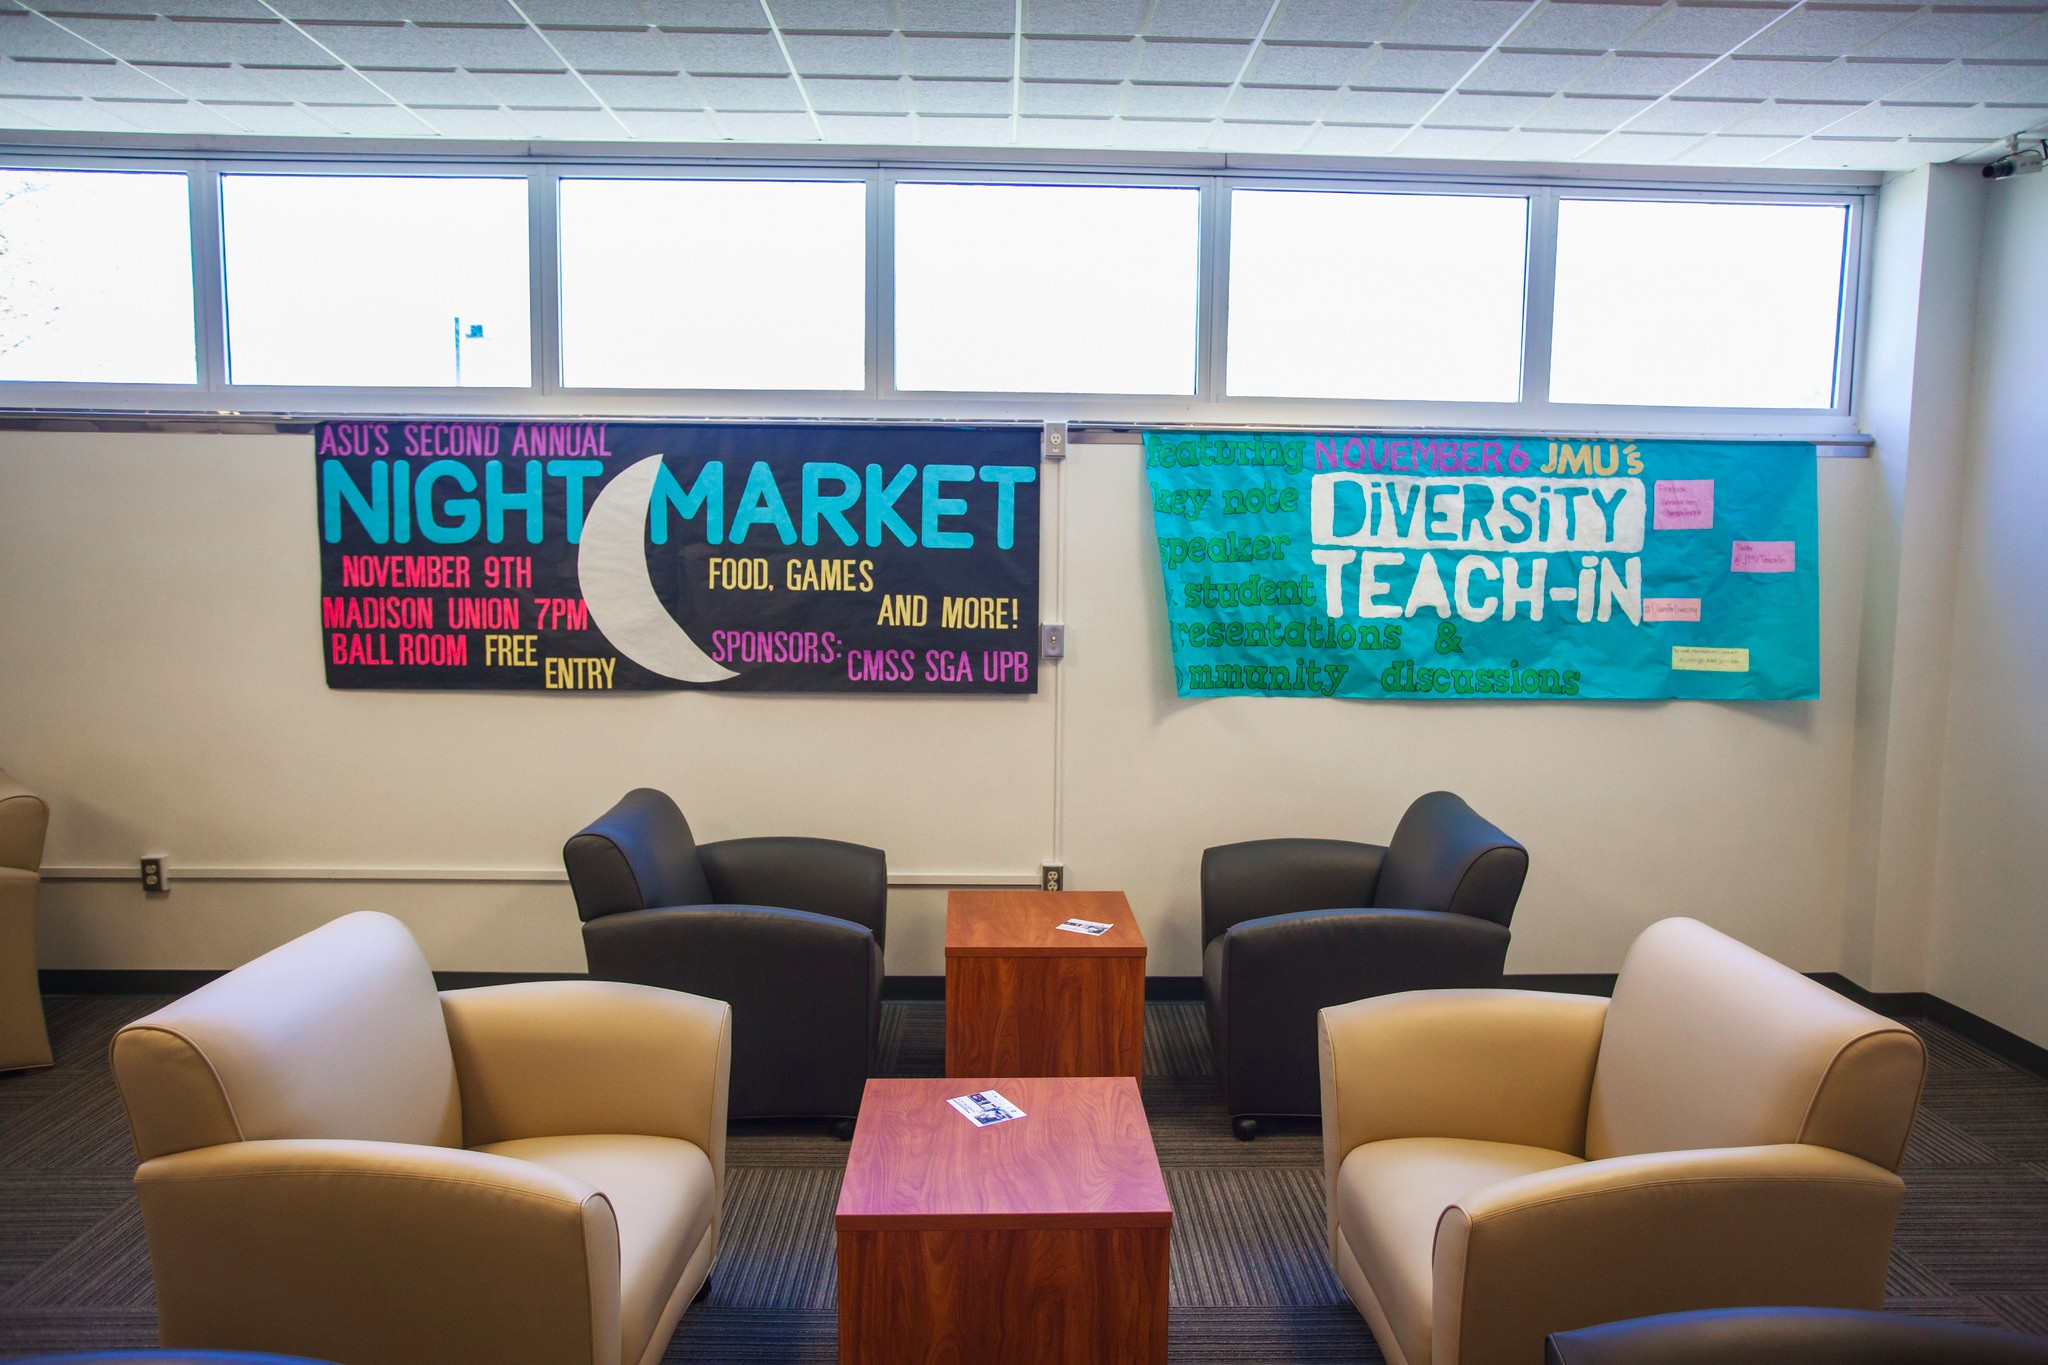 Image of Advertising Banners in Madison Union